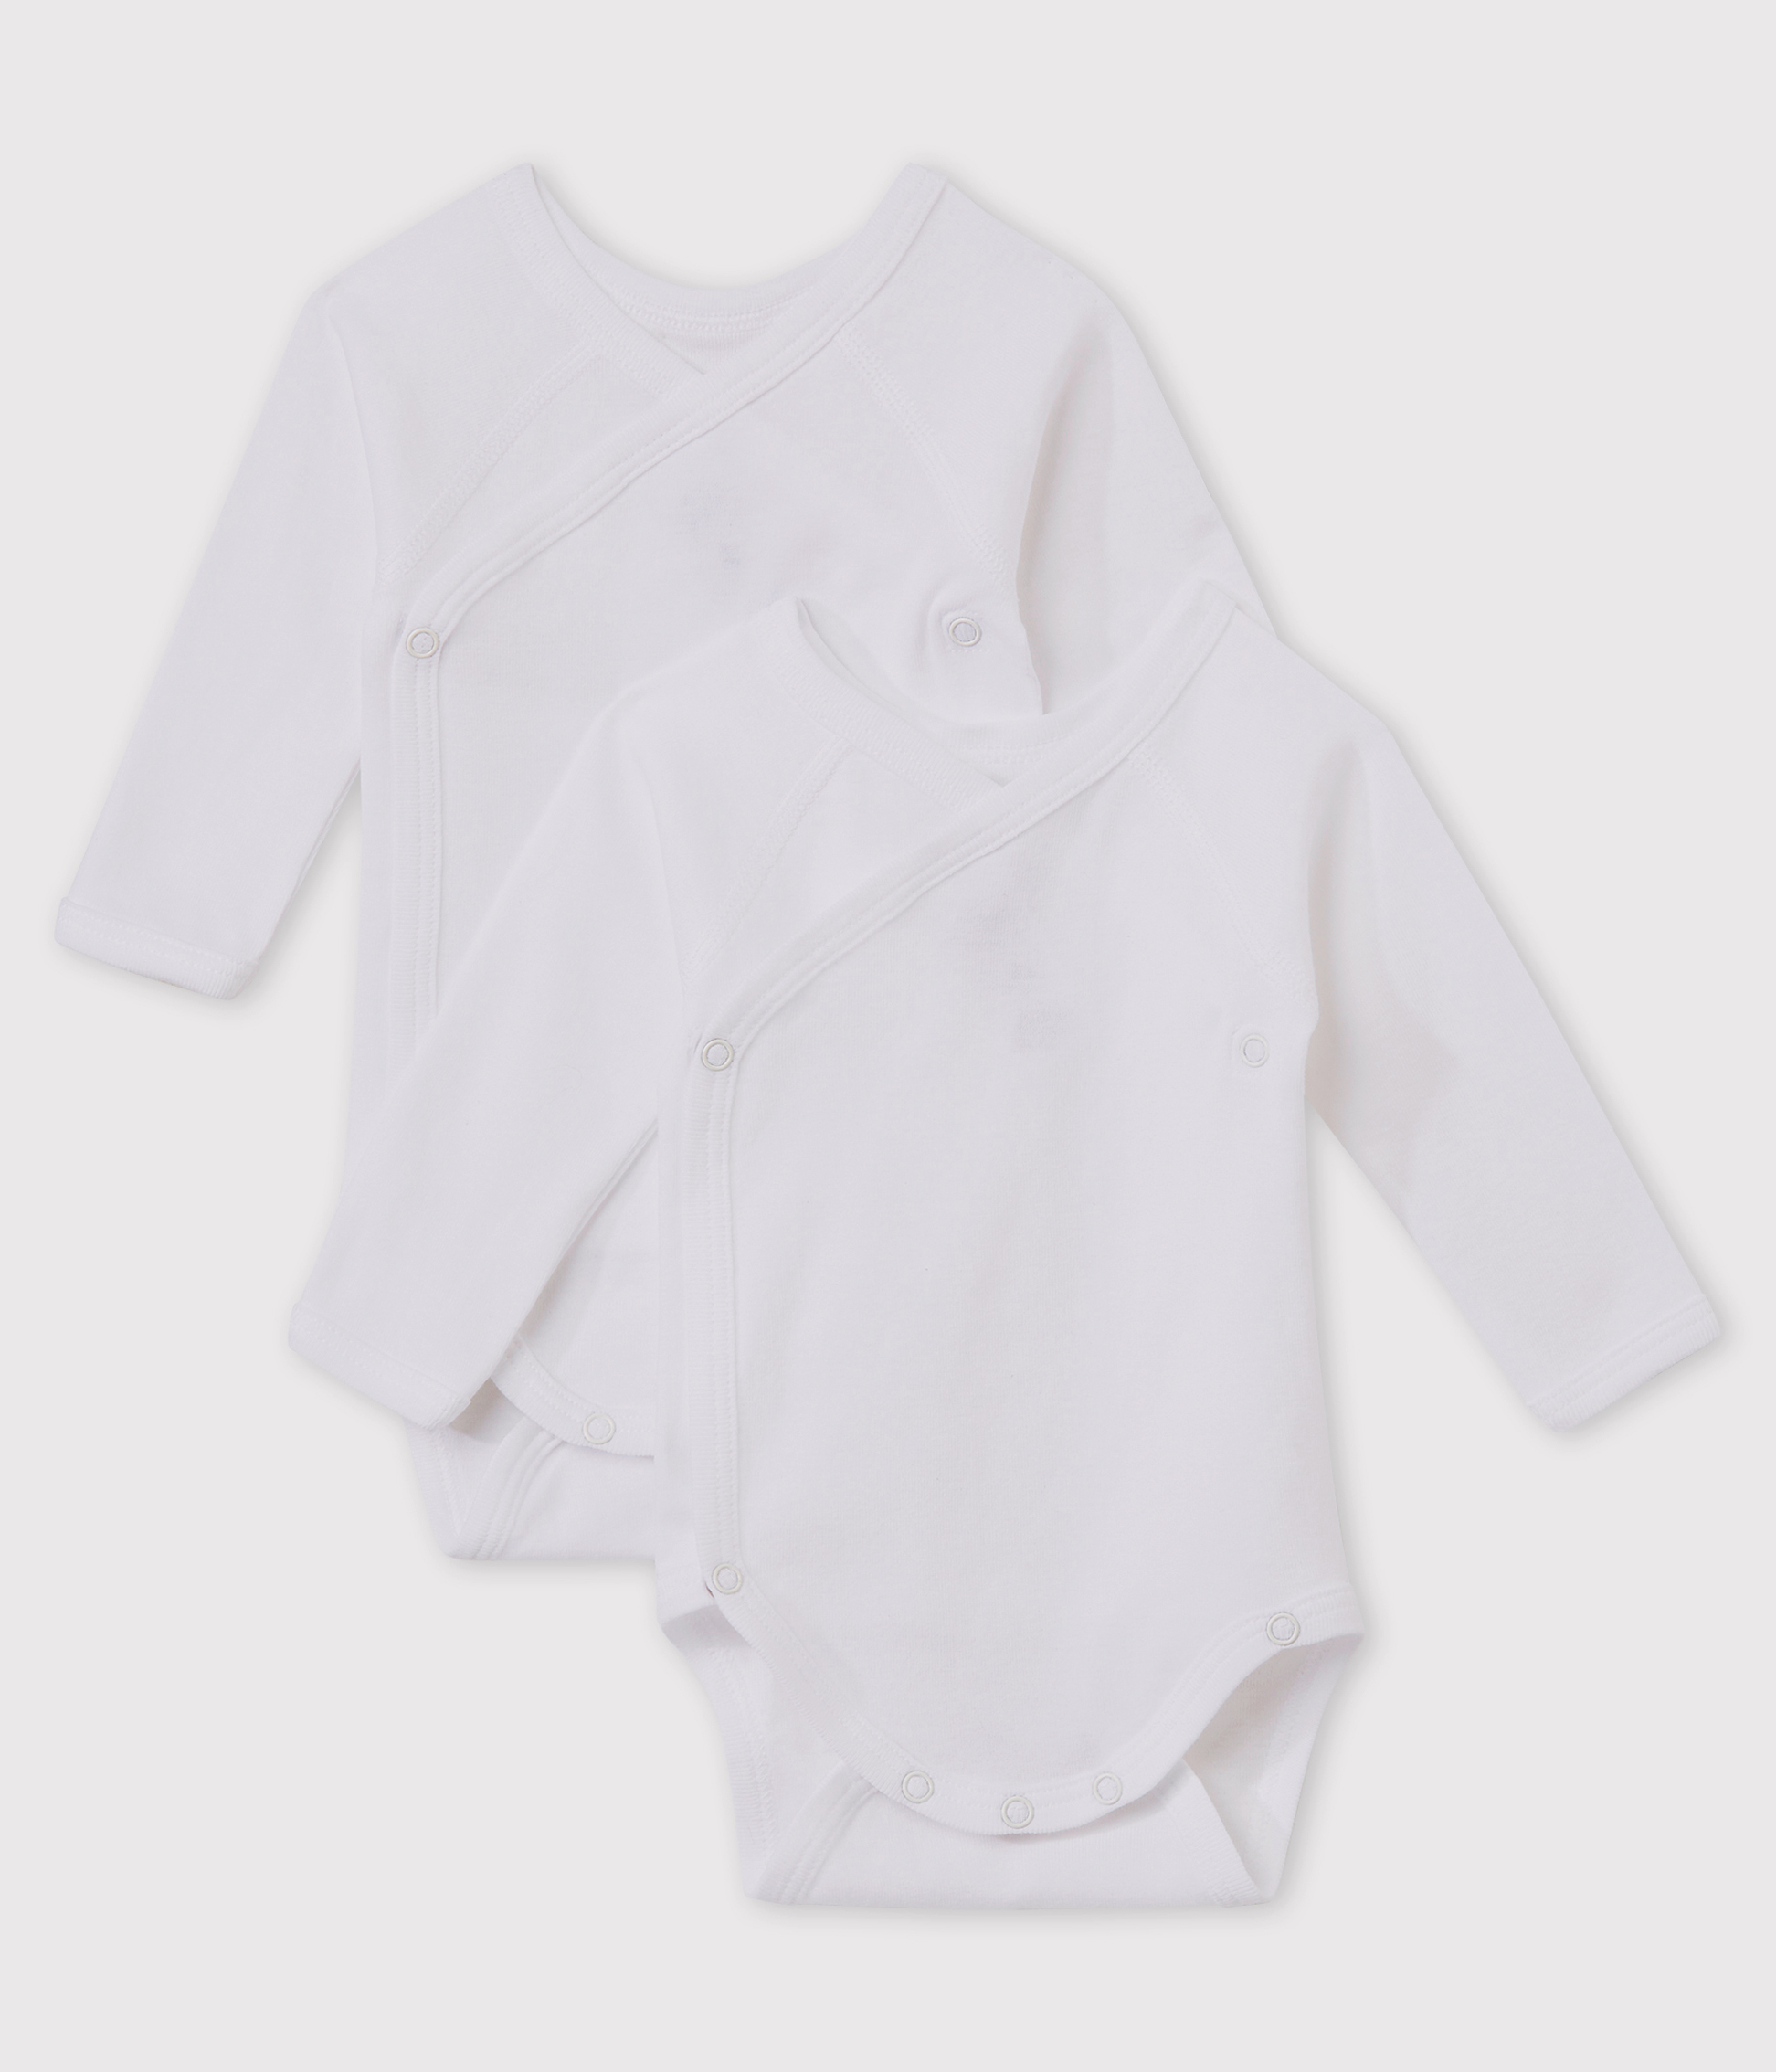 Set of 2 babies' white long-sleeved newborn bodysuits